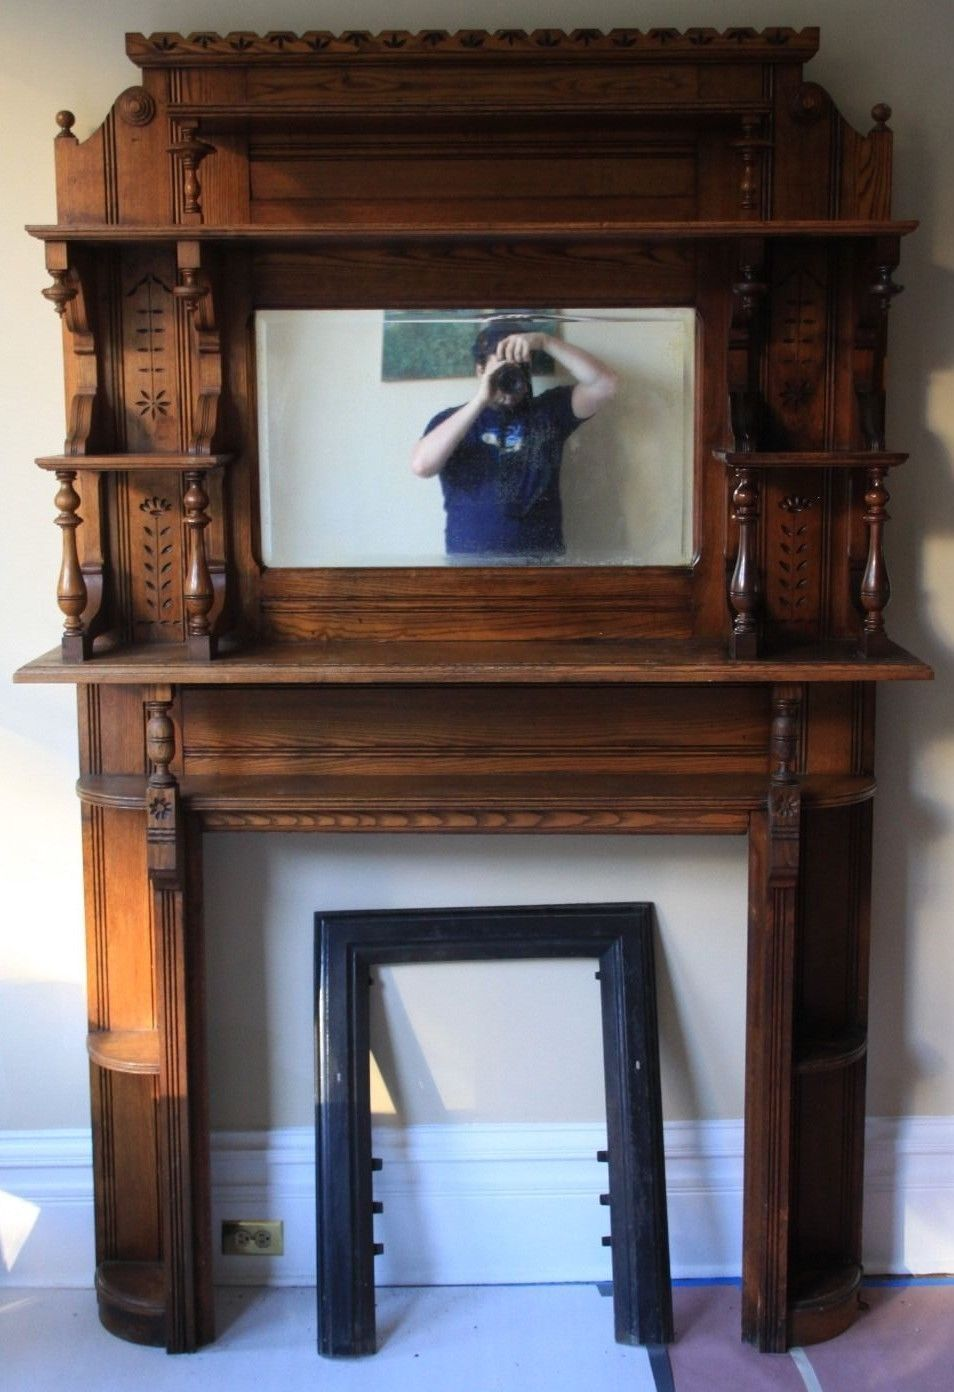 Antique Ornate Wood Fireplace Surround Antique Fireplace Mantels Wood Fireplace Fireplace